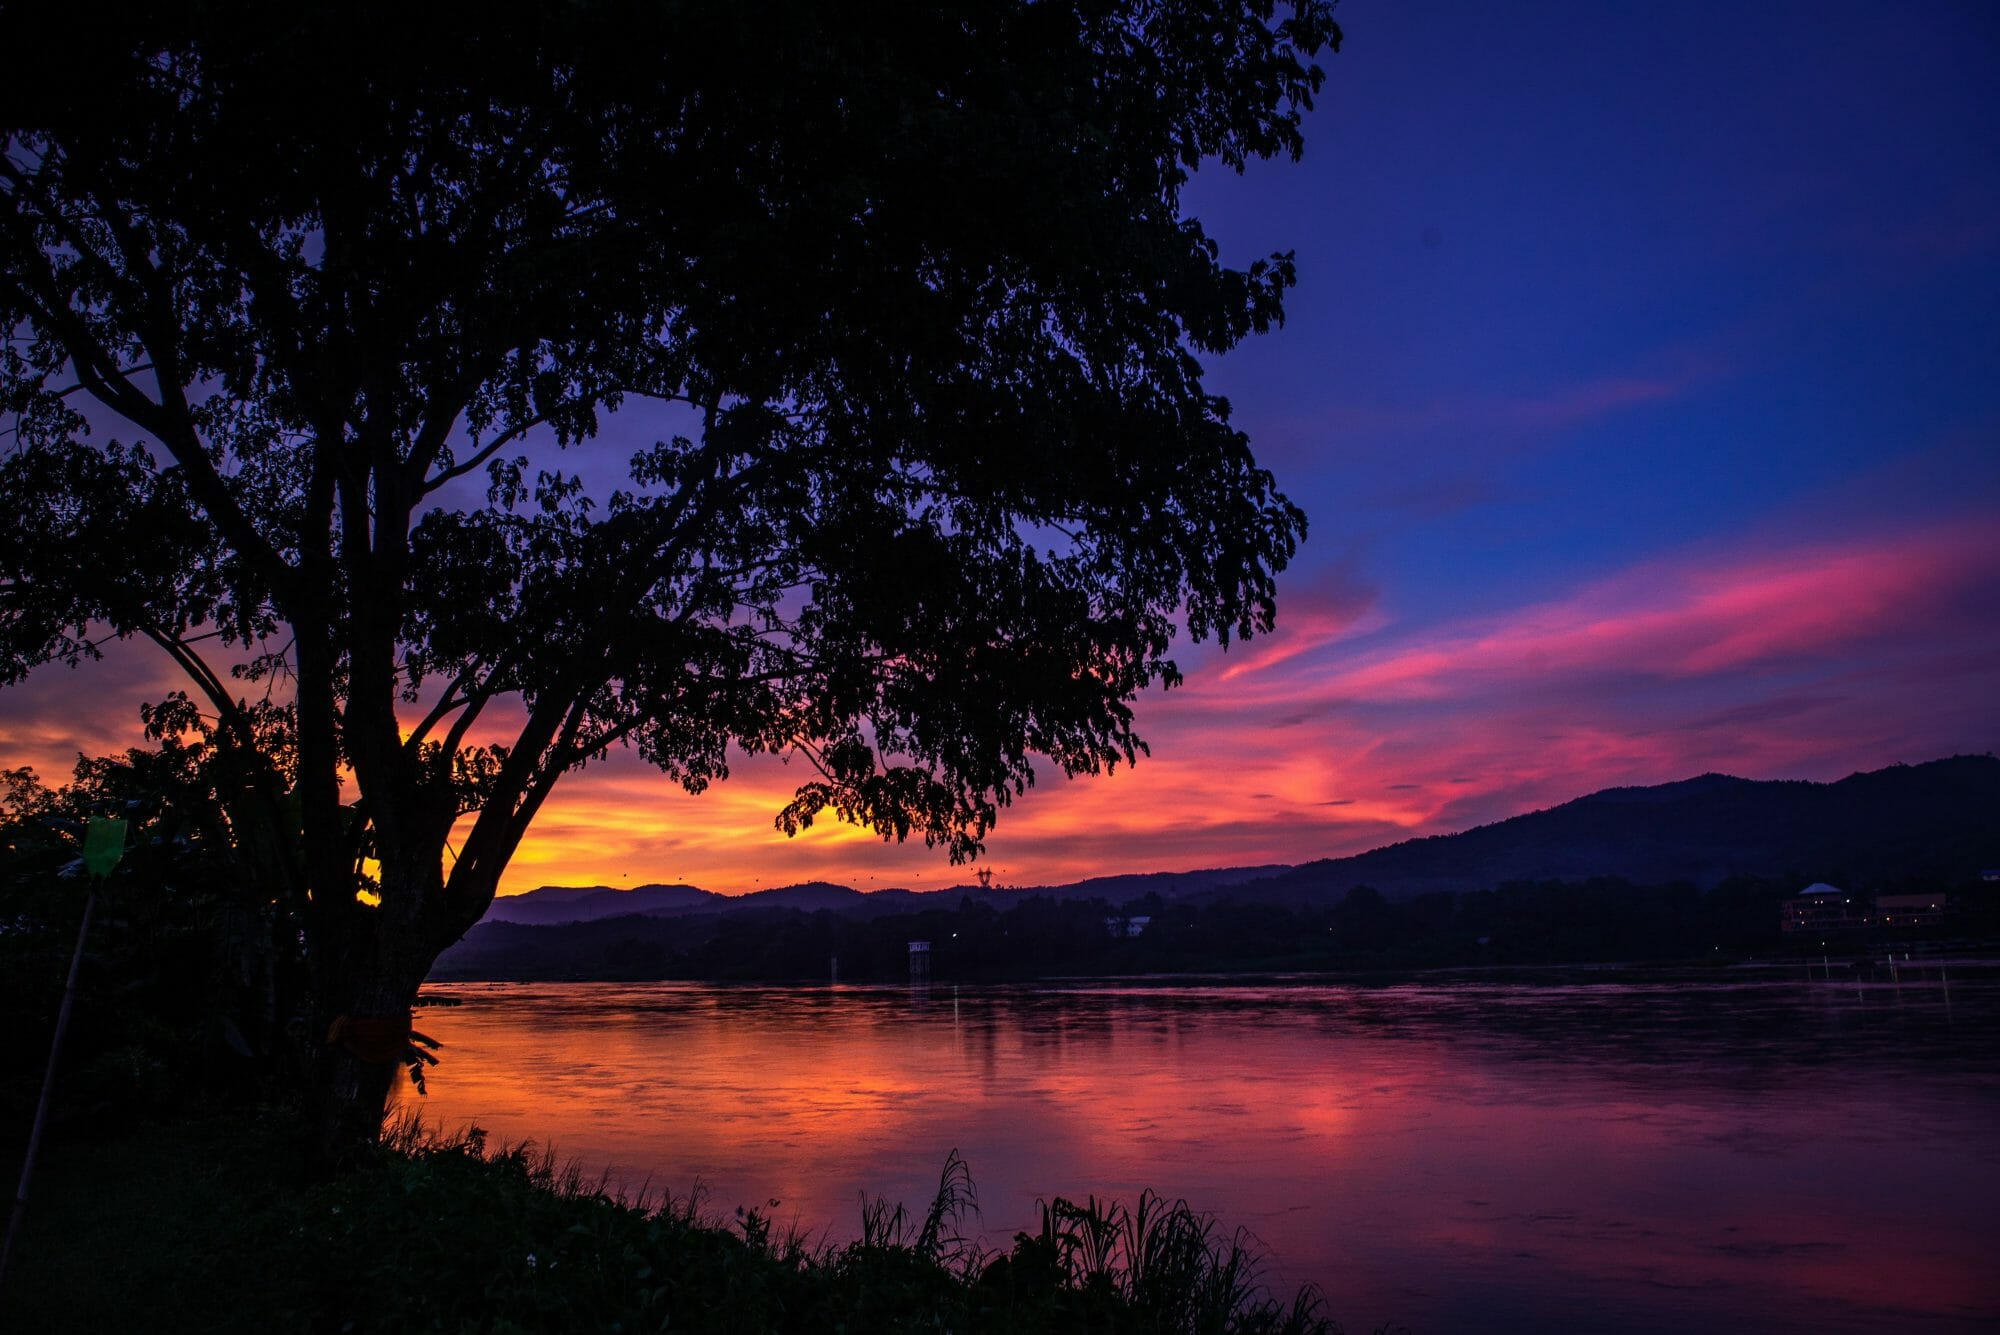 The sun sets on the Mekong River on the Thai-Lao border near Chiang Khong, Thailand.